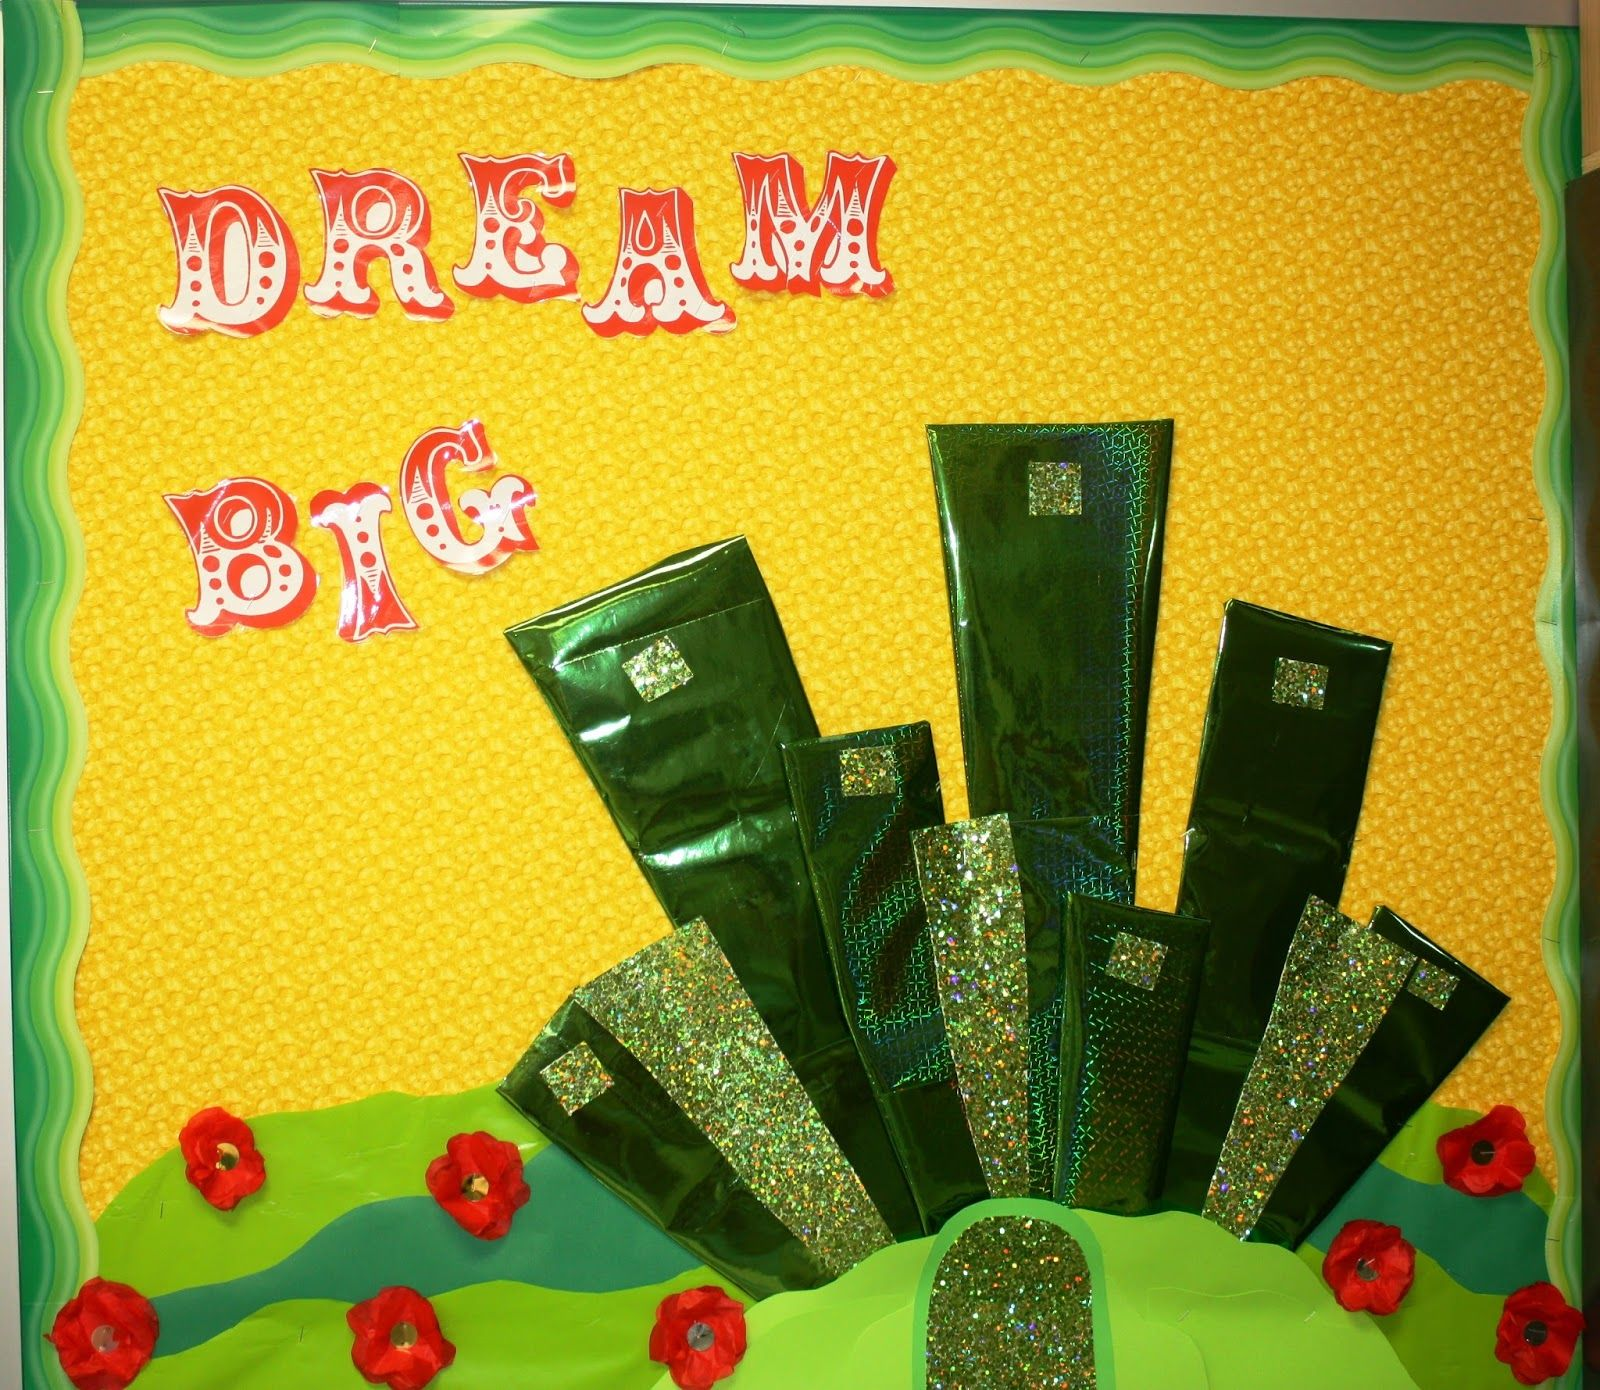 wizard of oz classroom decorations - Google Search | wizard of oz ...